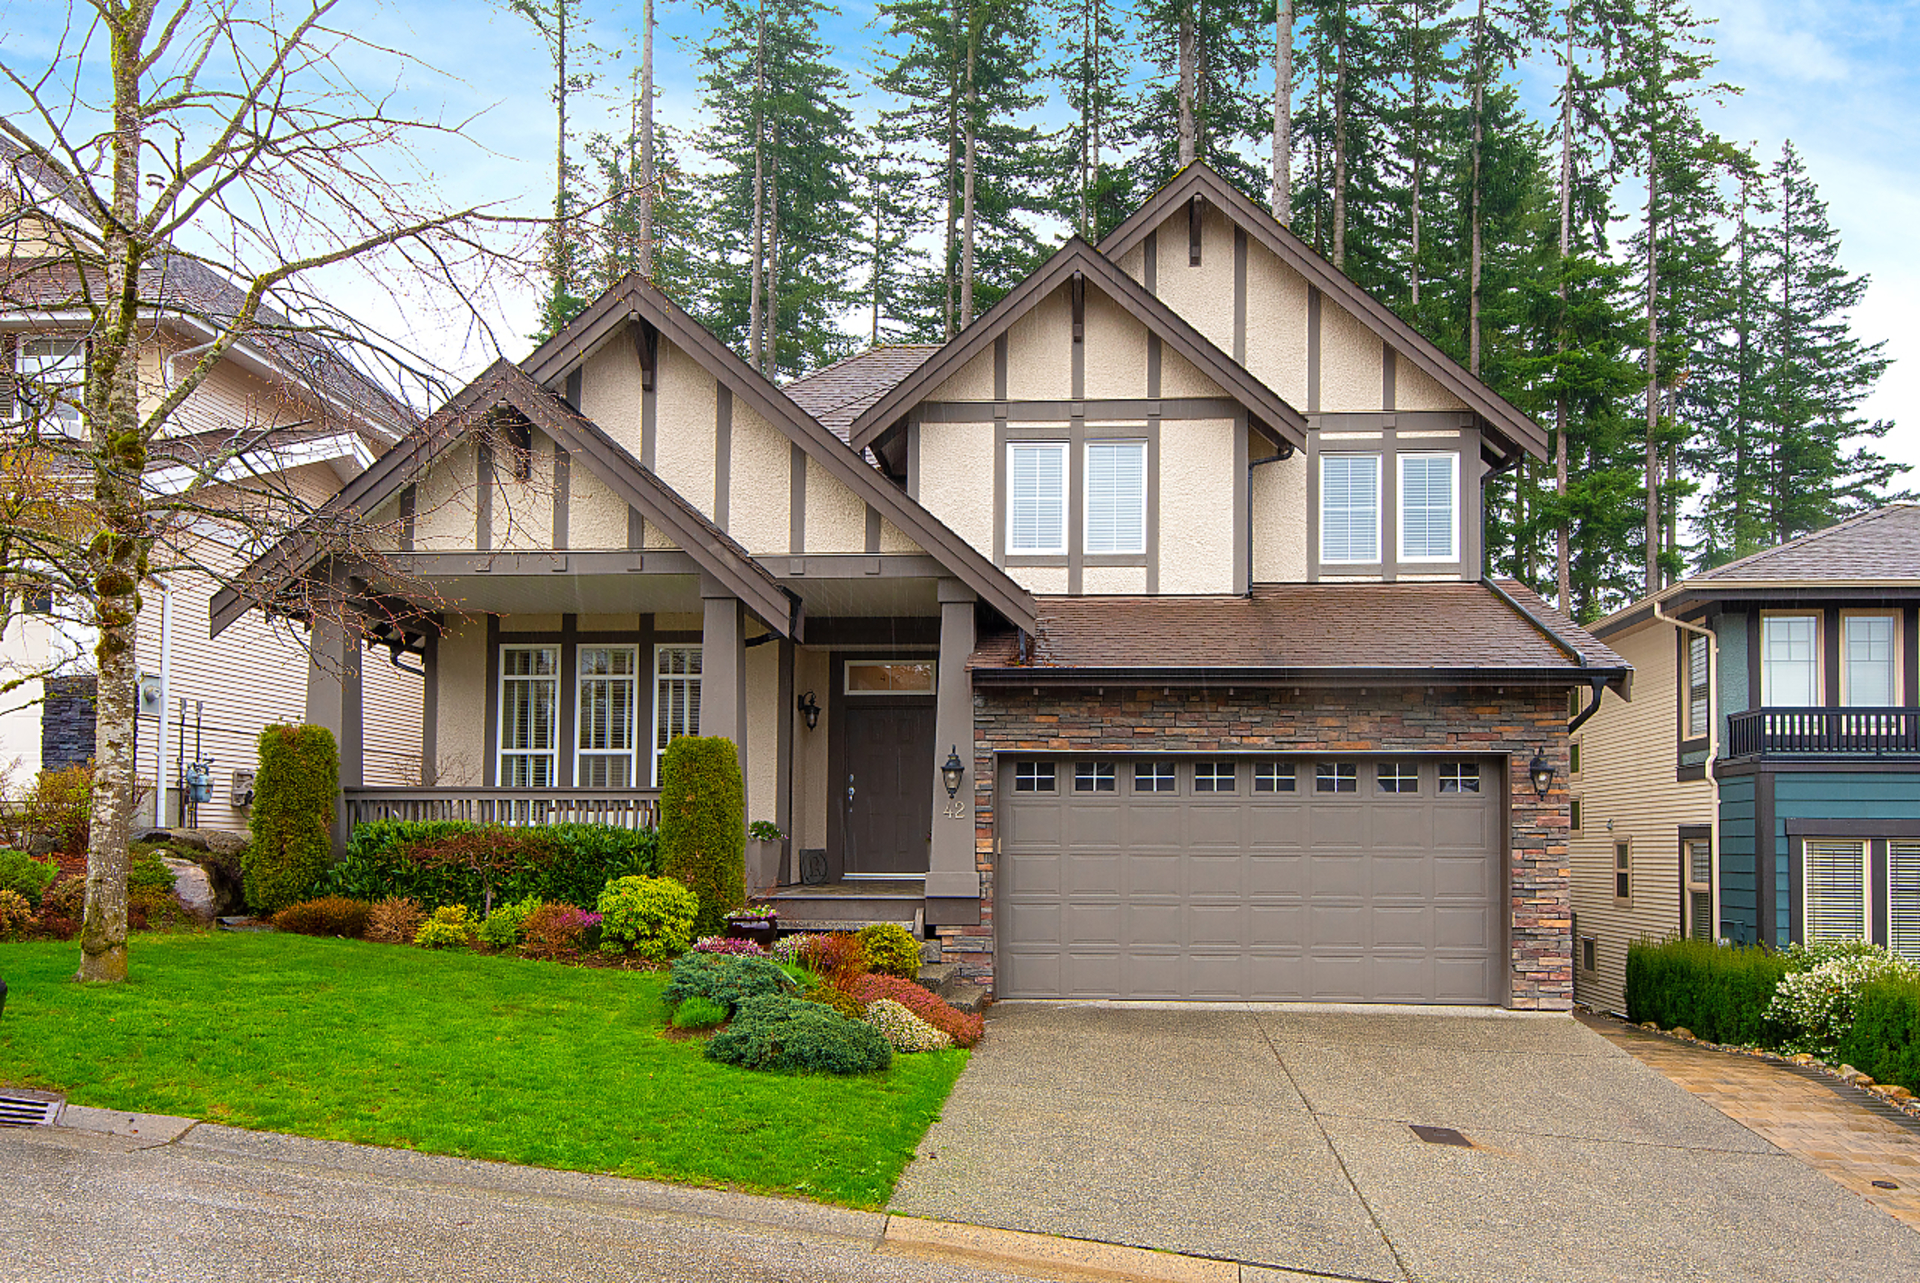 001 at 42 Cliffwood Drive, Heritage Woods PM, Port Moody